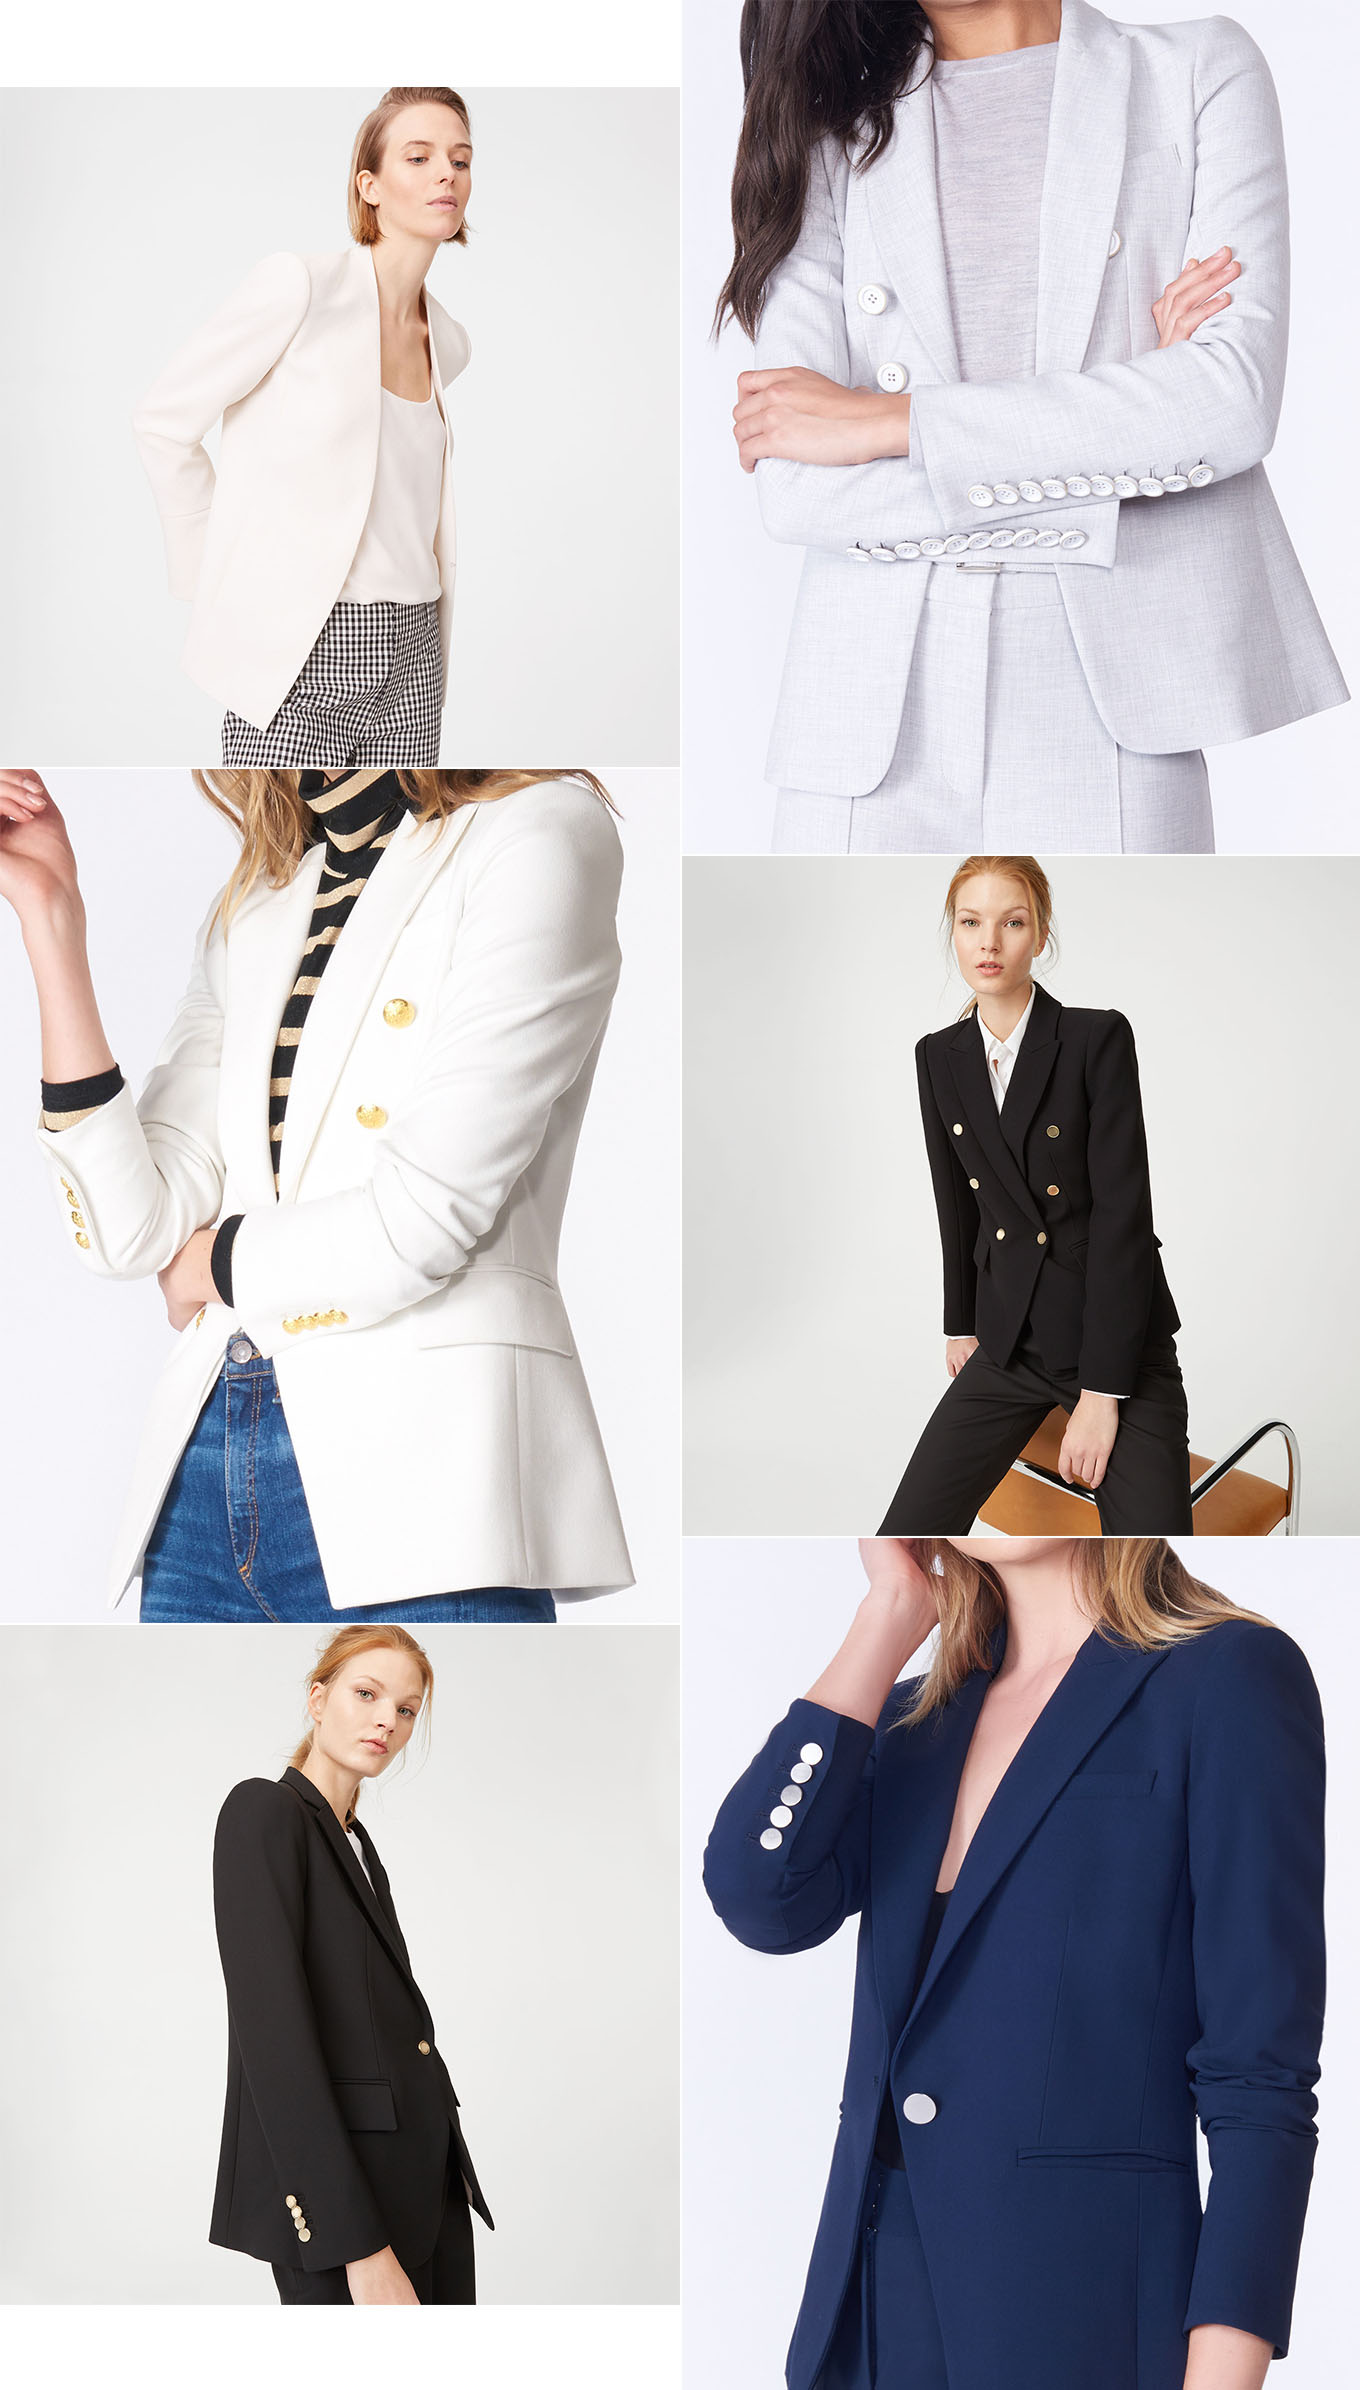 Ridgely Brode's go to piece of clothing is a classic blazer, she tops jeans or pants to give herself a finished look. She shares some new favorites on Ridgely's Radar.